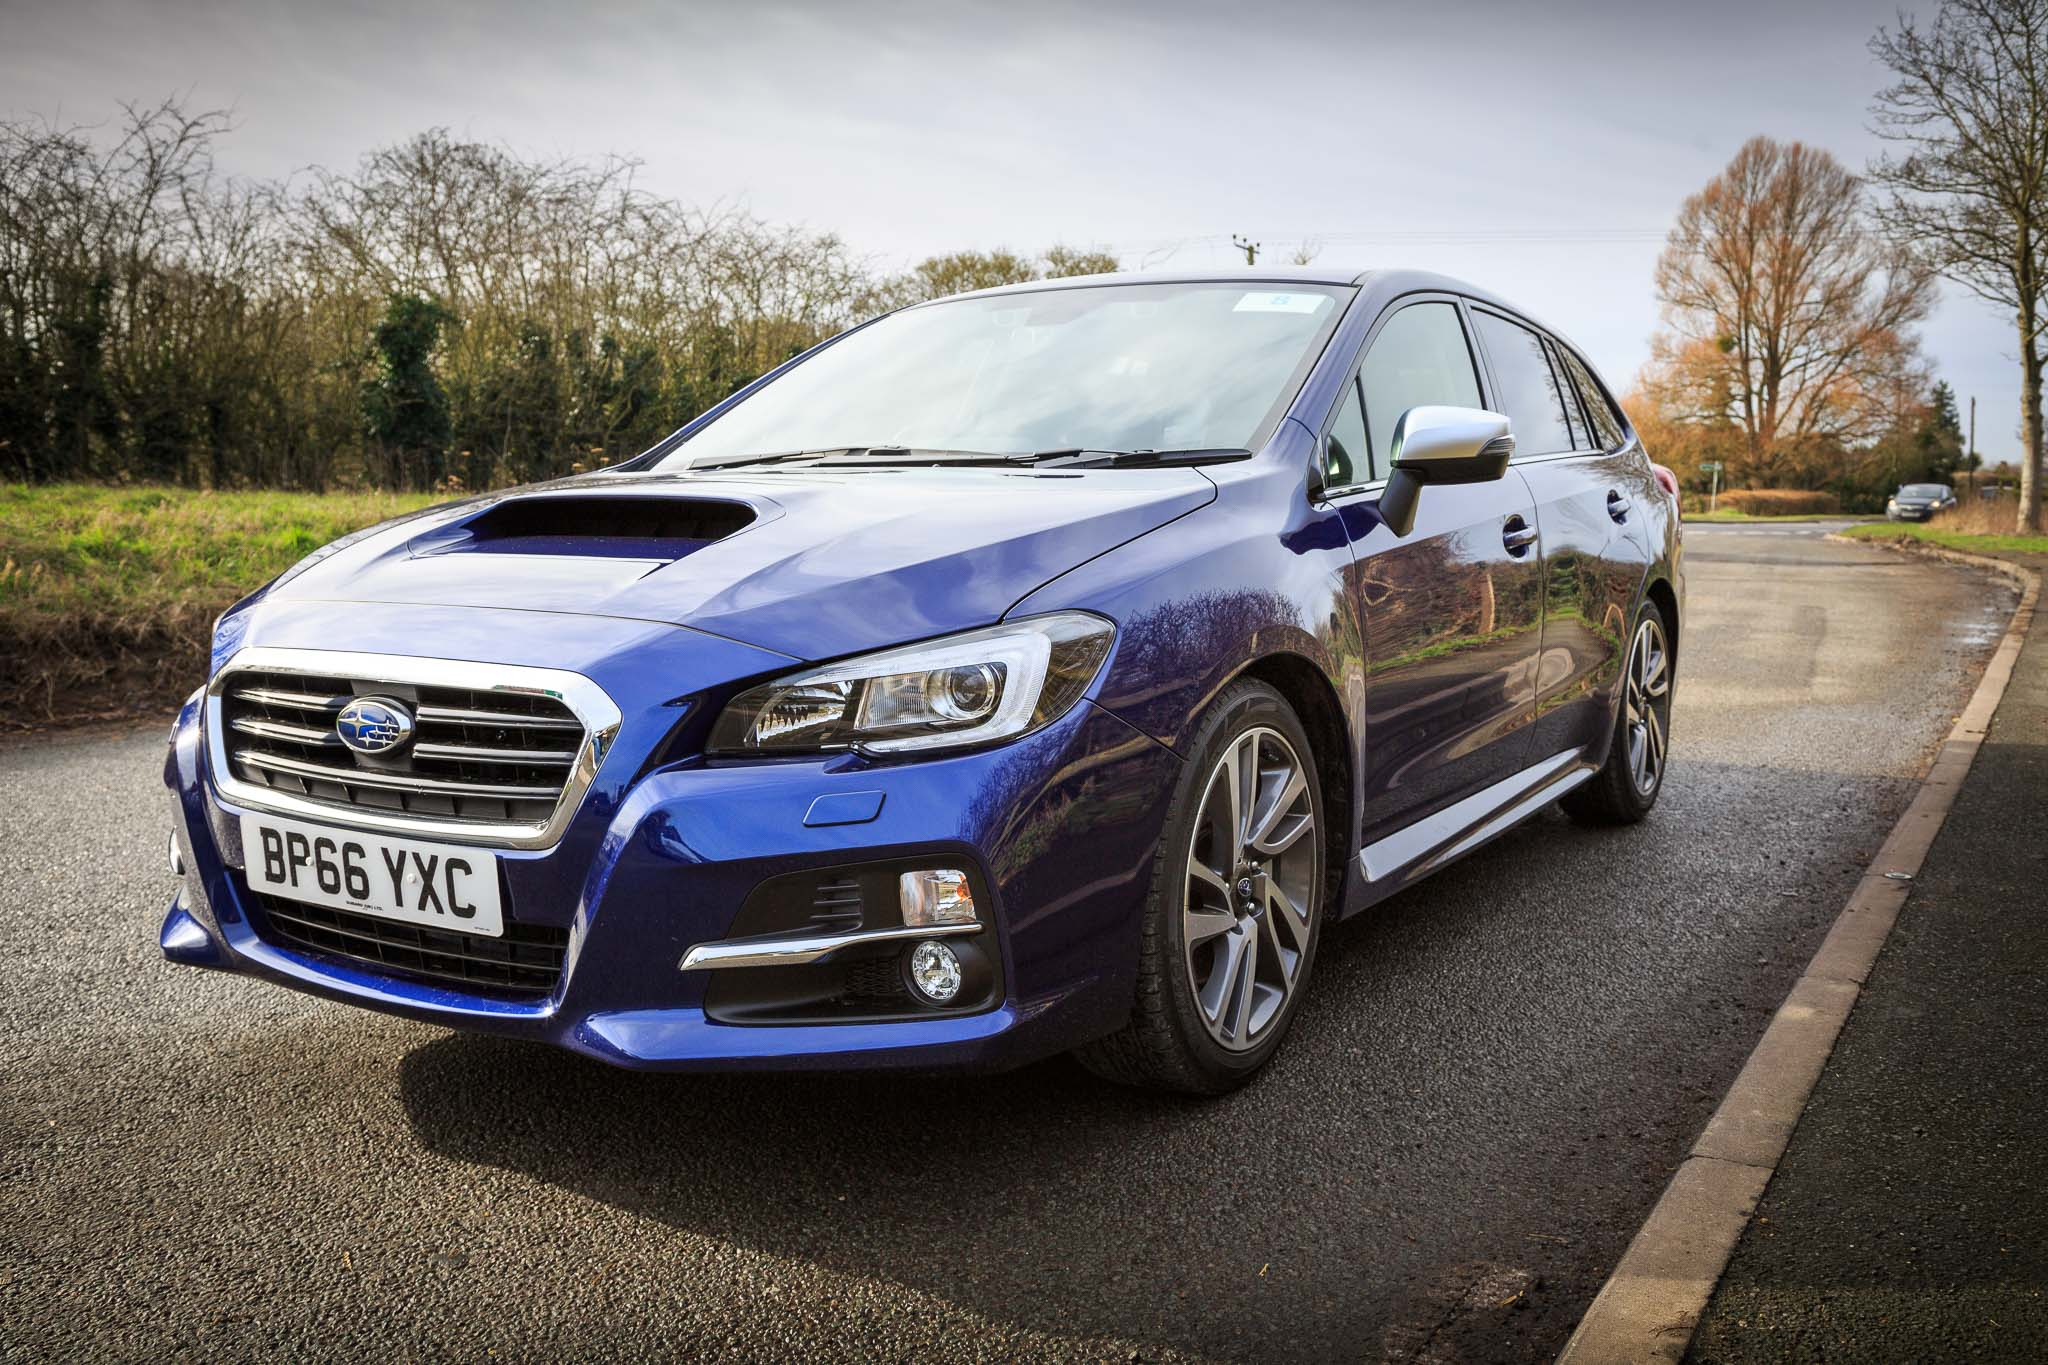 2017 subaru levorg gt review marking subaru on the map. Black Bedroom Furniture Sets. Home Design Ideas